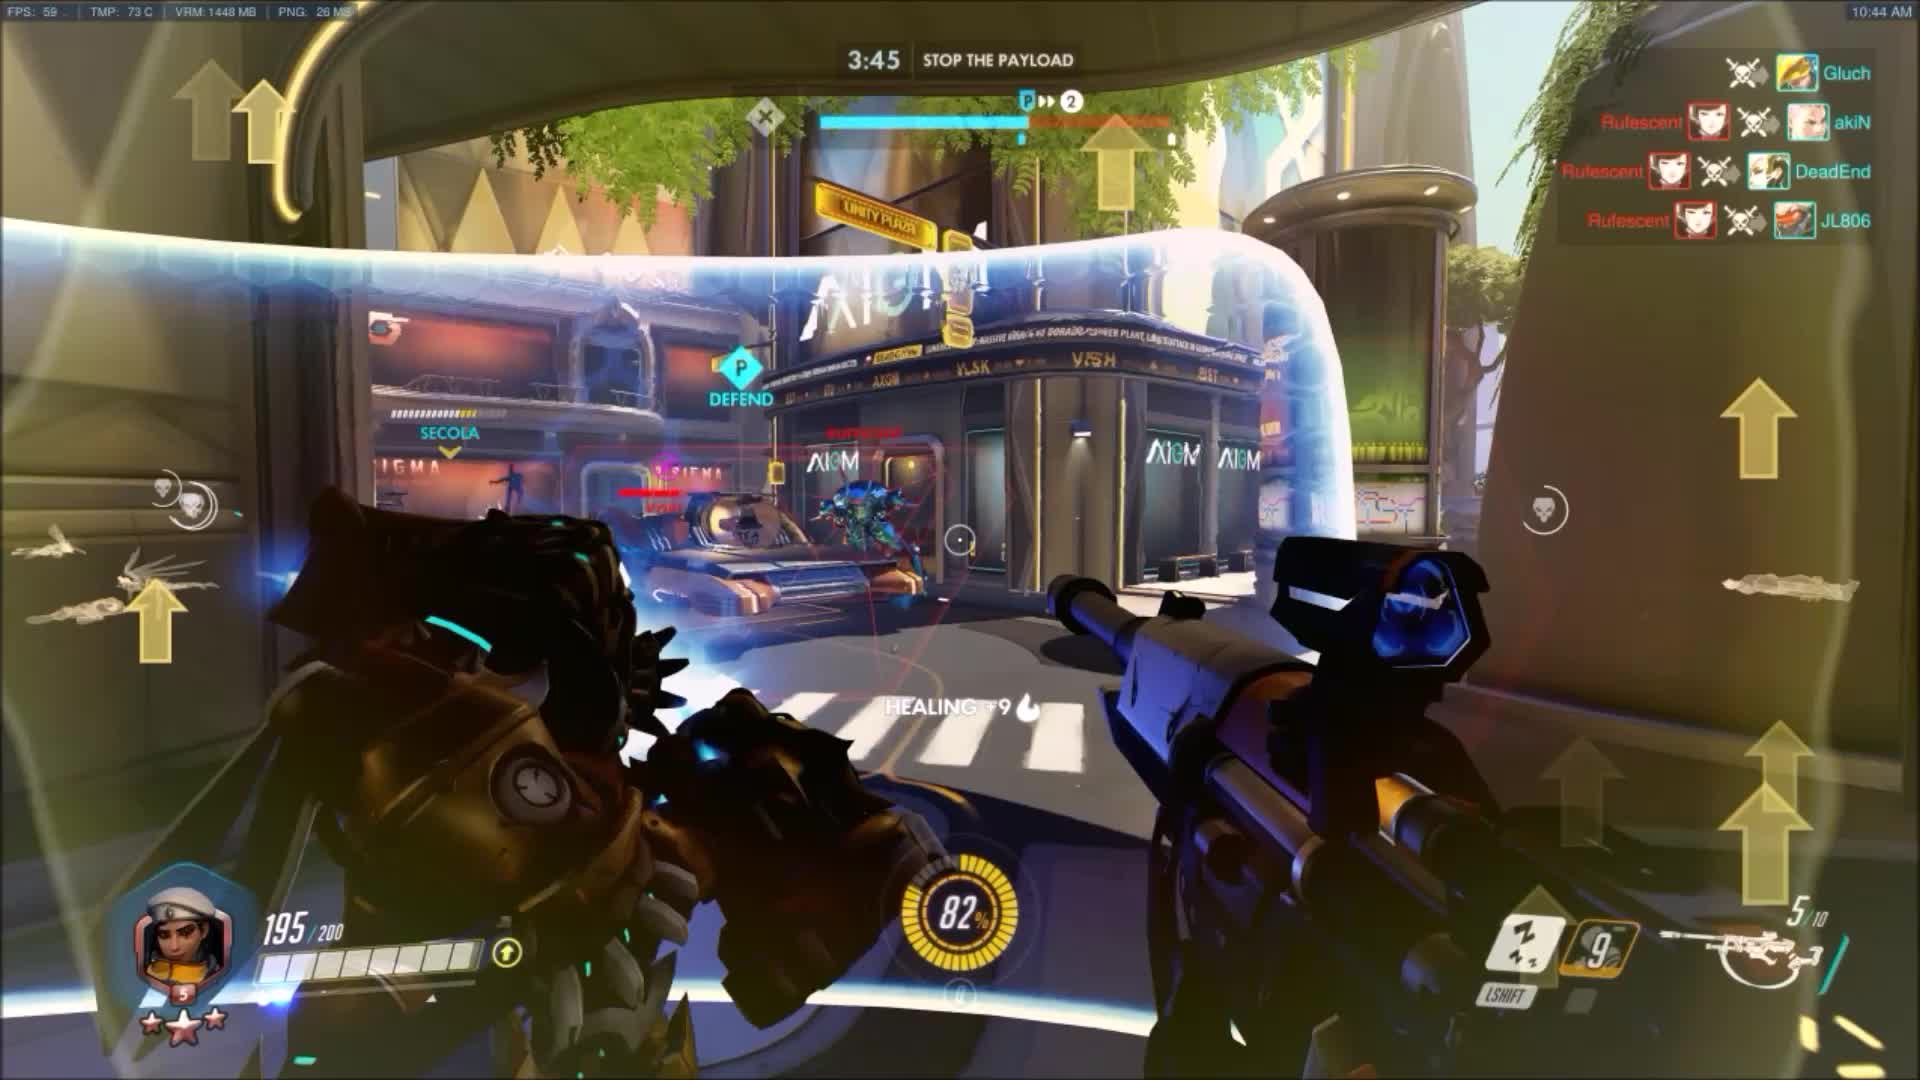 actuallyfunny, gaming_gifs, Sorry, Tracer GIFs